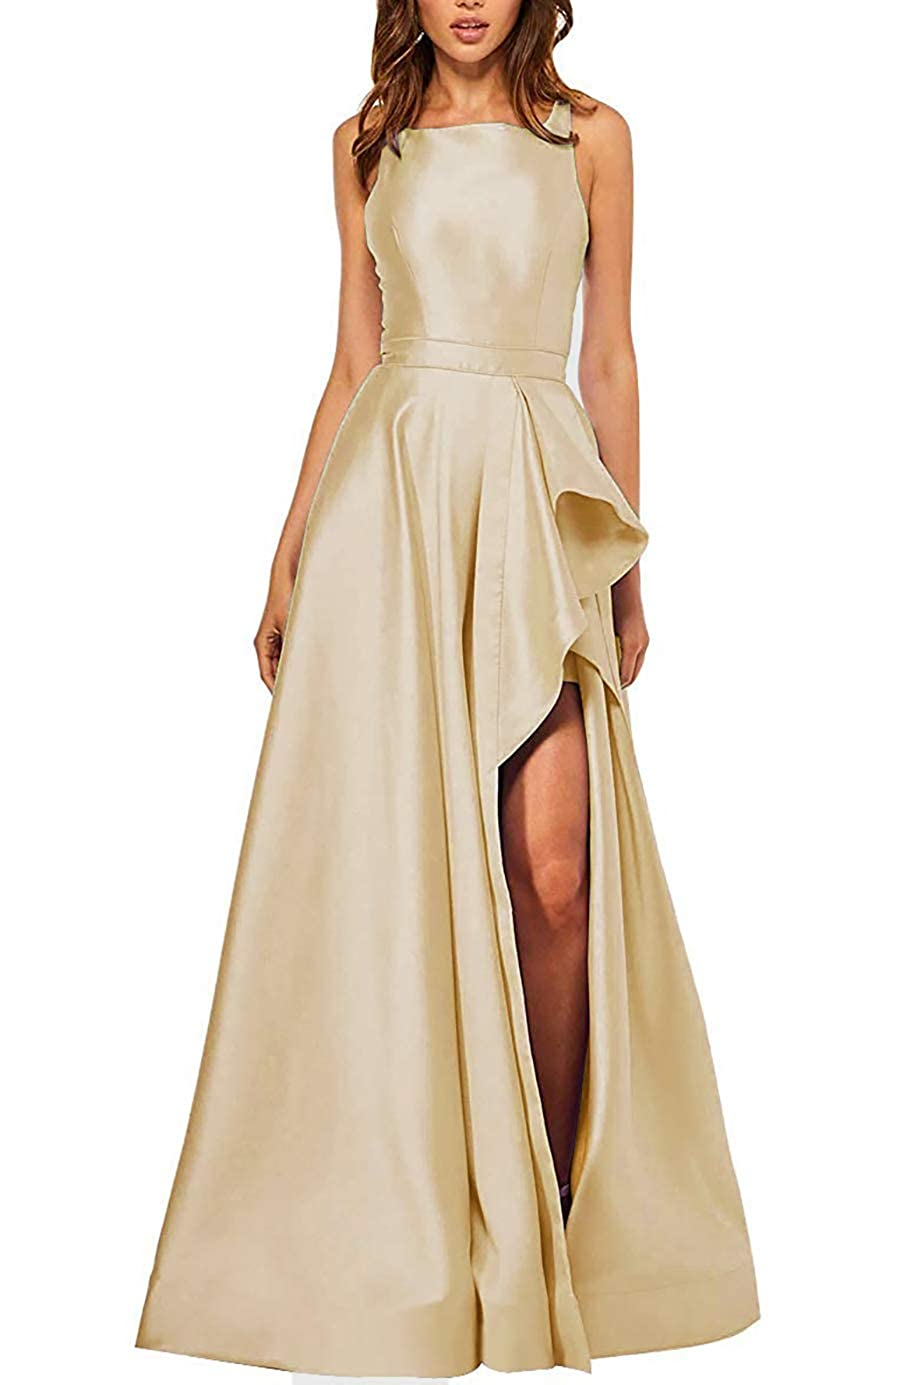 Champagne PrettyTatum Women's Backless Long Prom Dresses Formal Evening Ball Gowns with Split Pockets